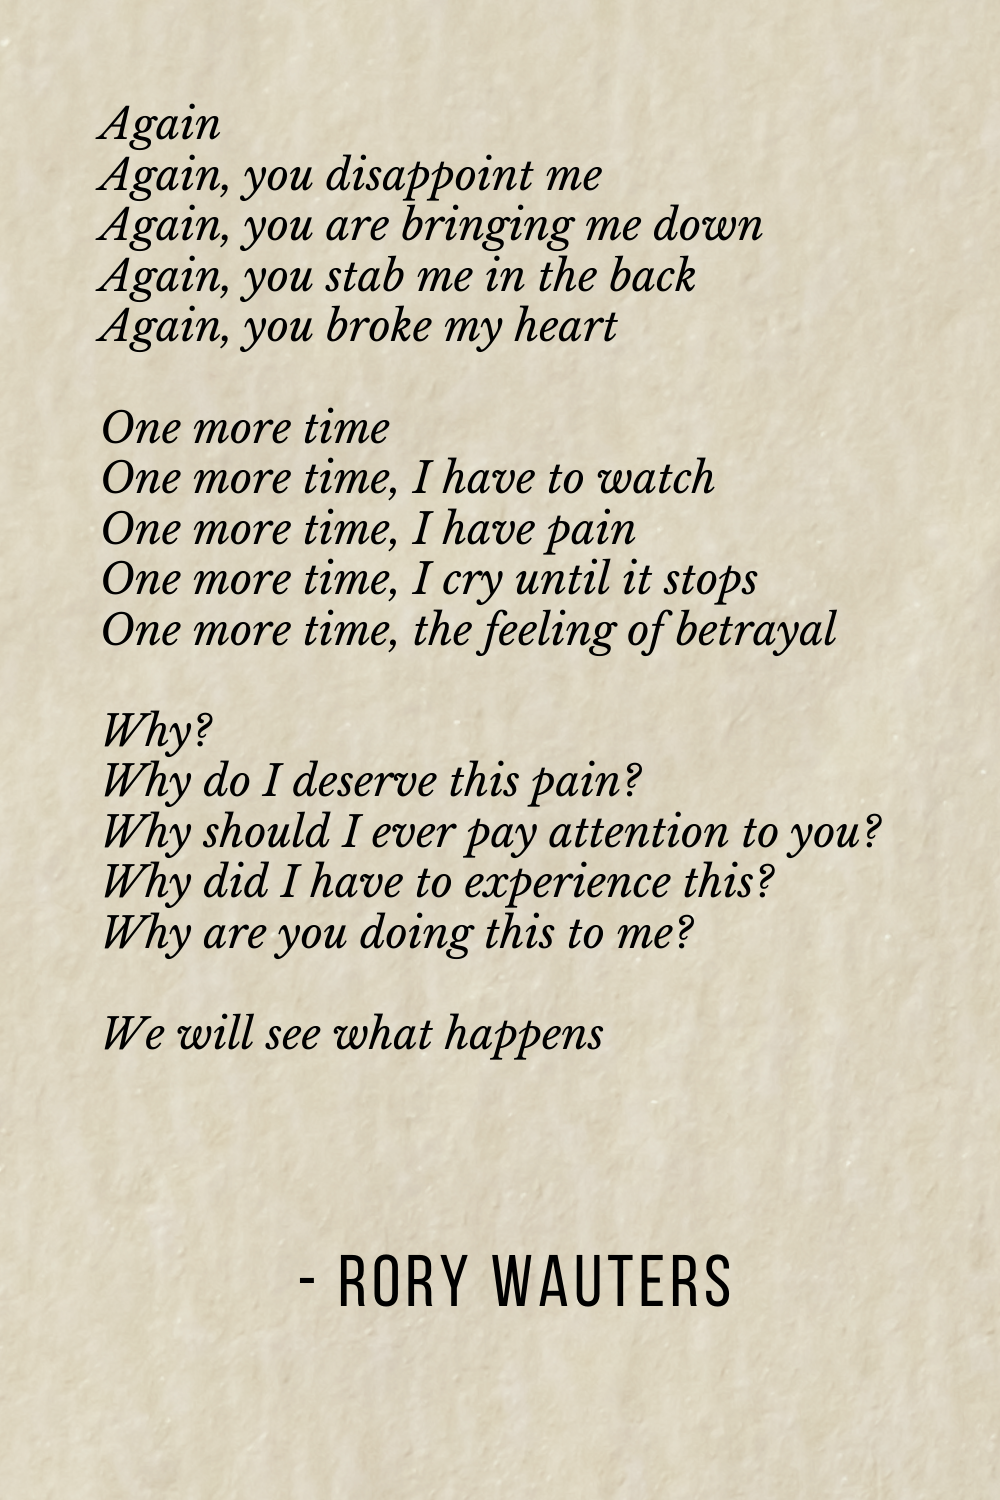 Pin by Rory Wauters on My Poetry   My poetry, You broke my